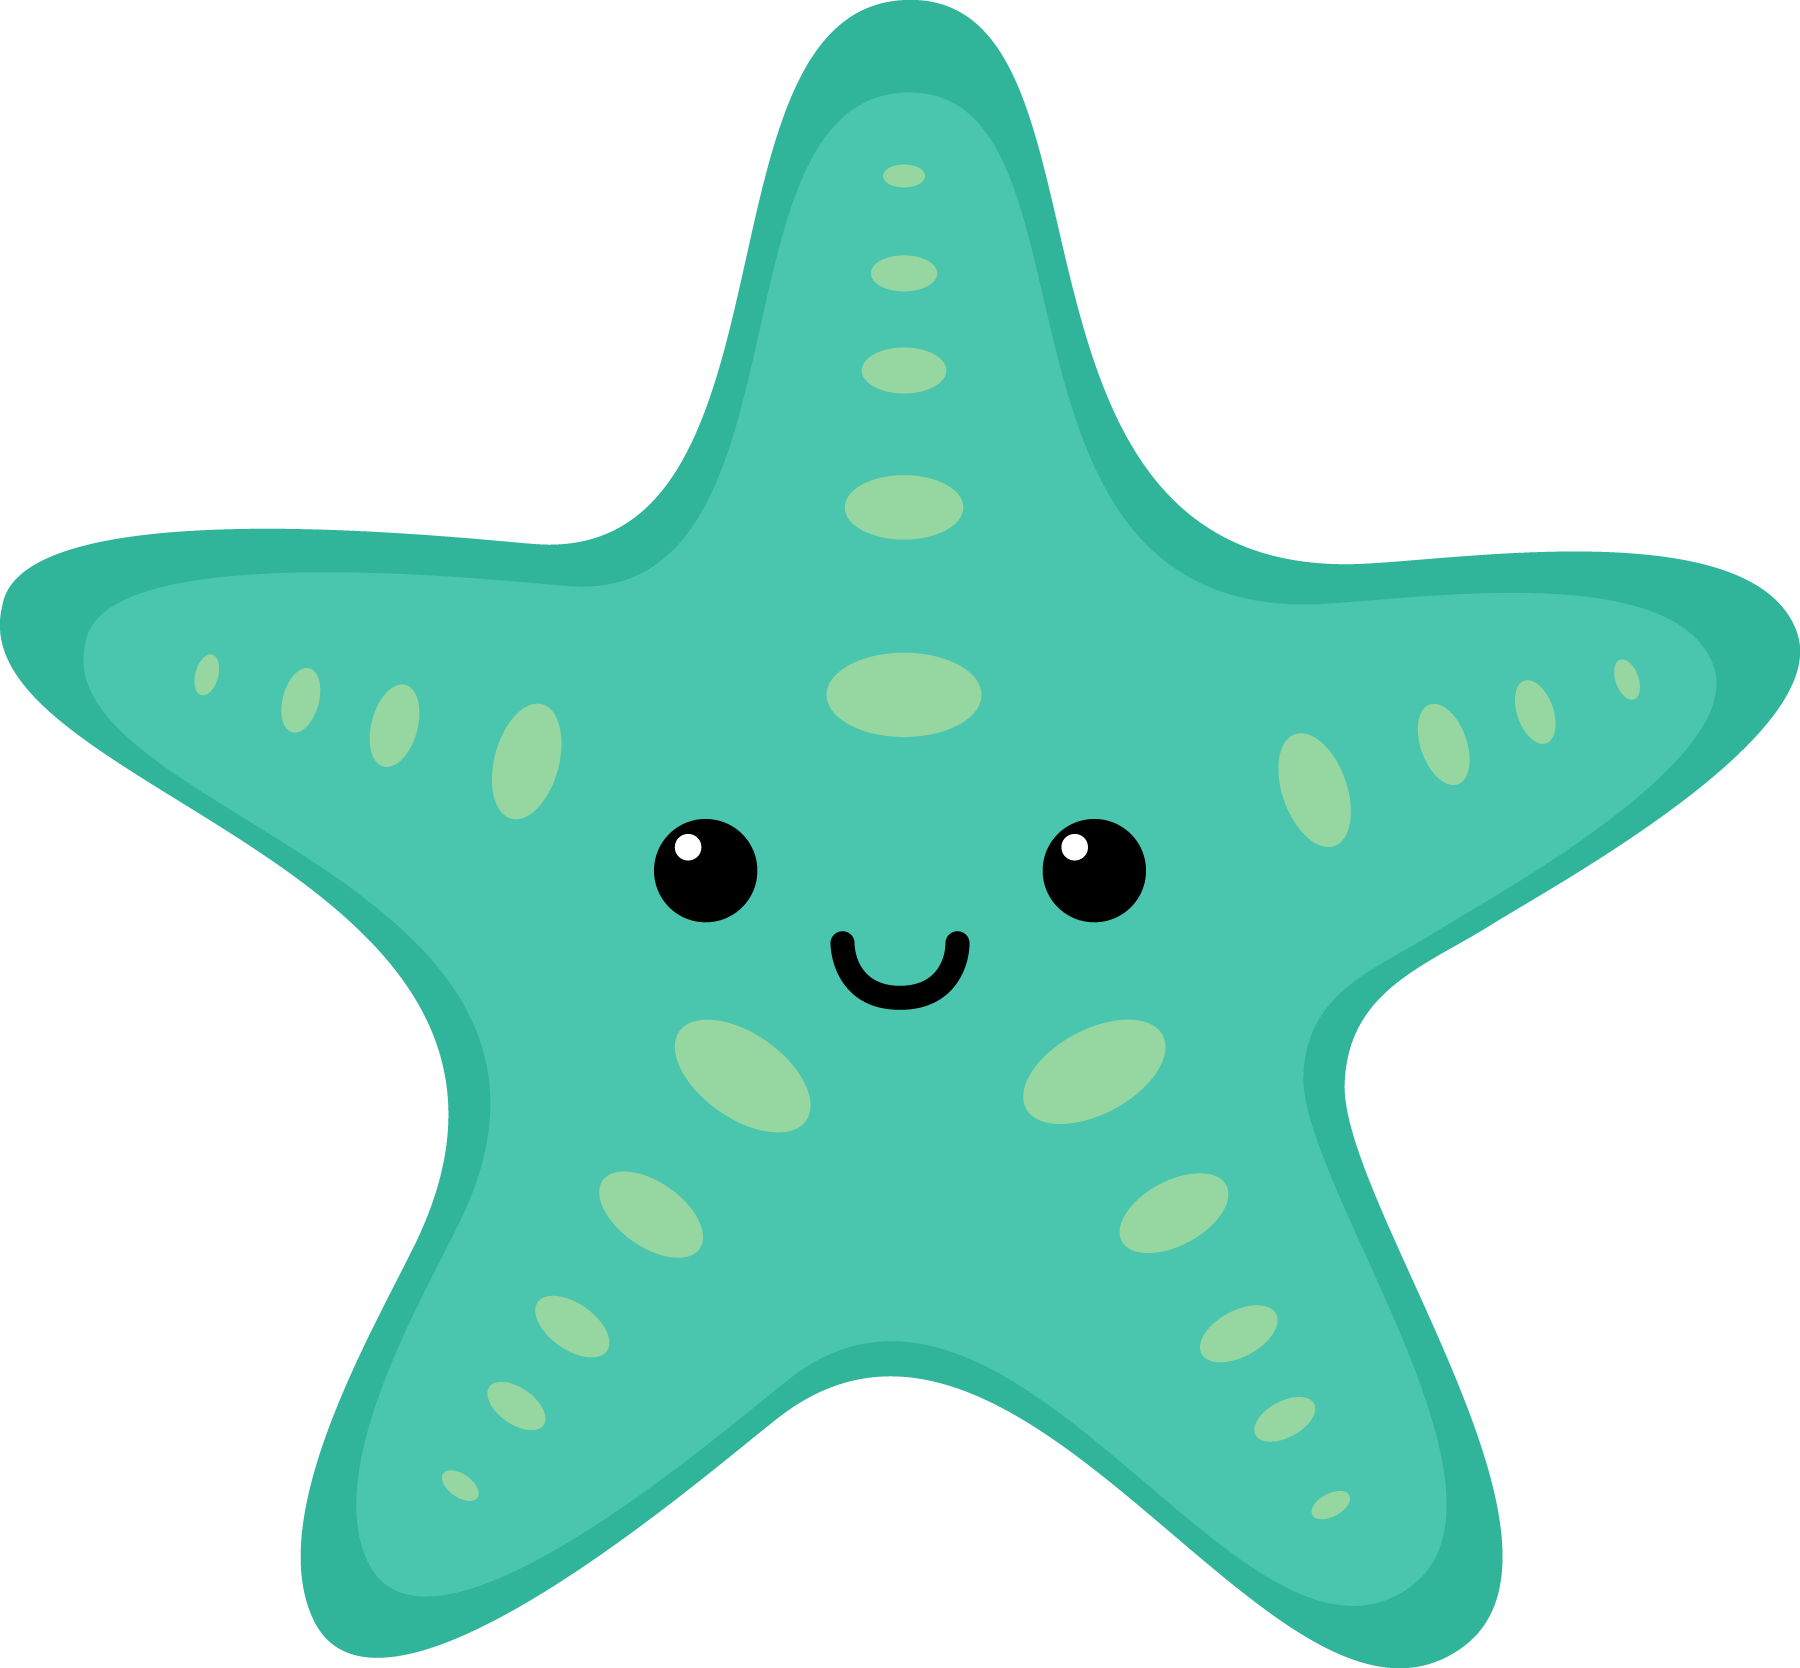 Sea Star Graphic Free Stock Turquoise Get Free High Quality Sea Star Graphic Free Stock Turquoise On Clipart In 2020 Cartoon Sea Animals Baby Shark Animal Clipart